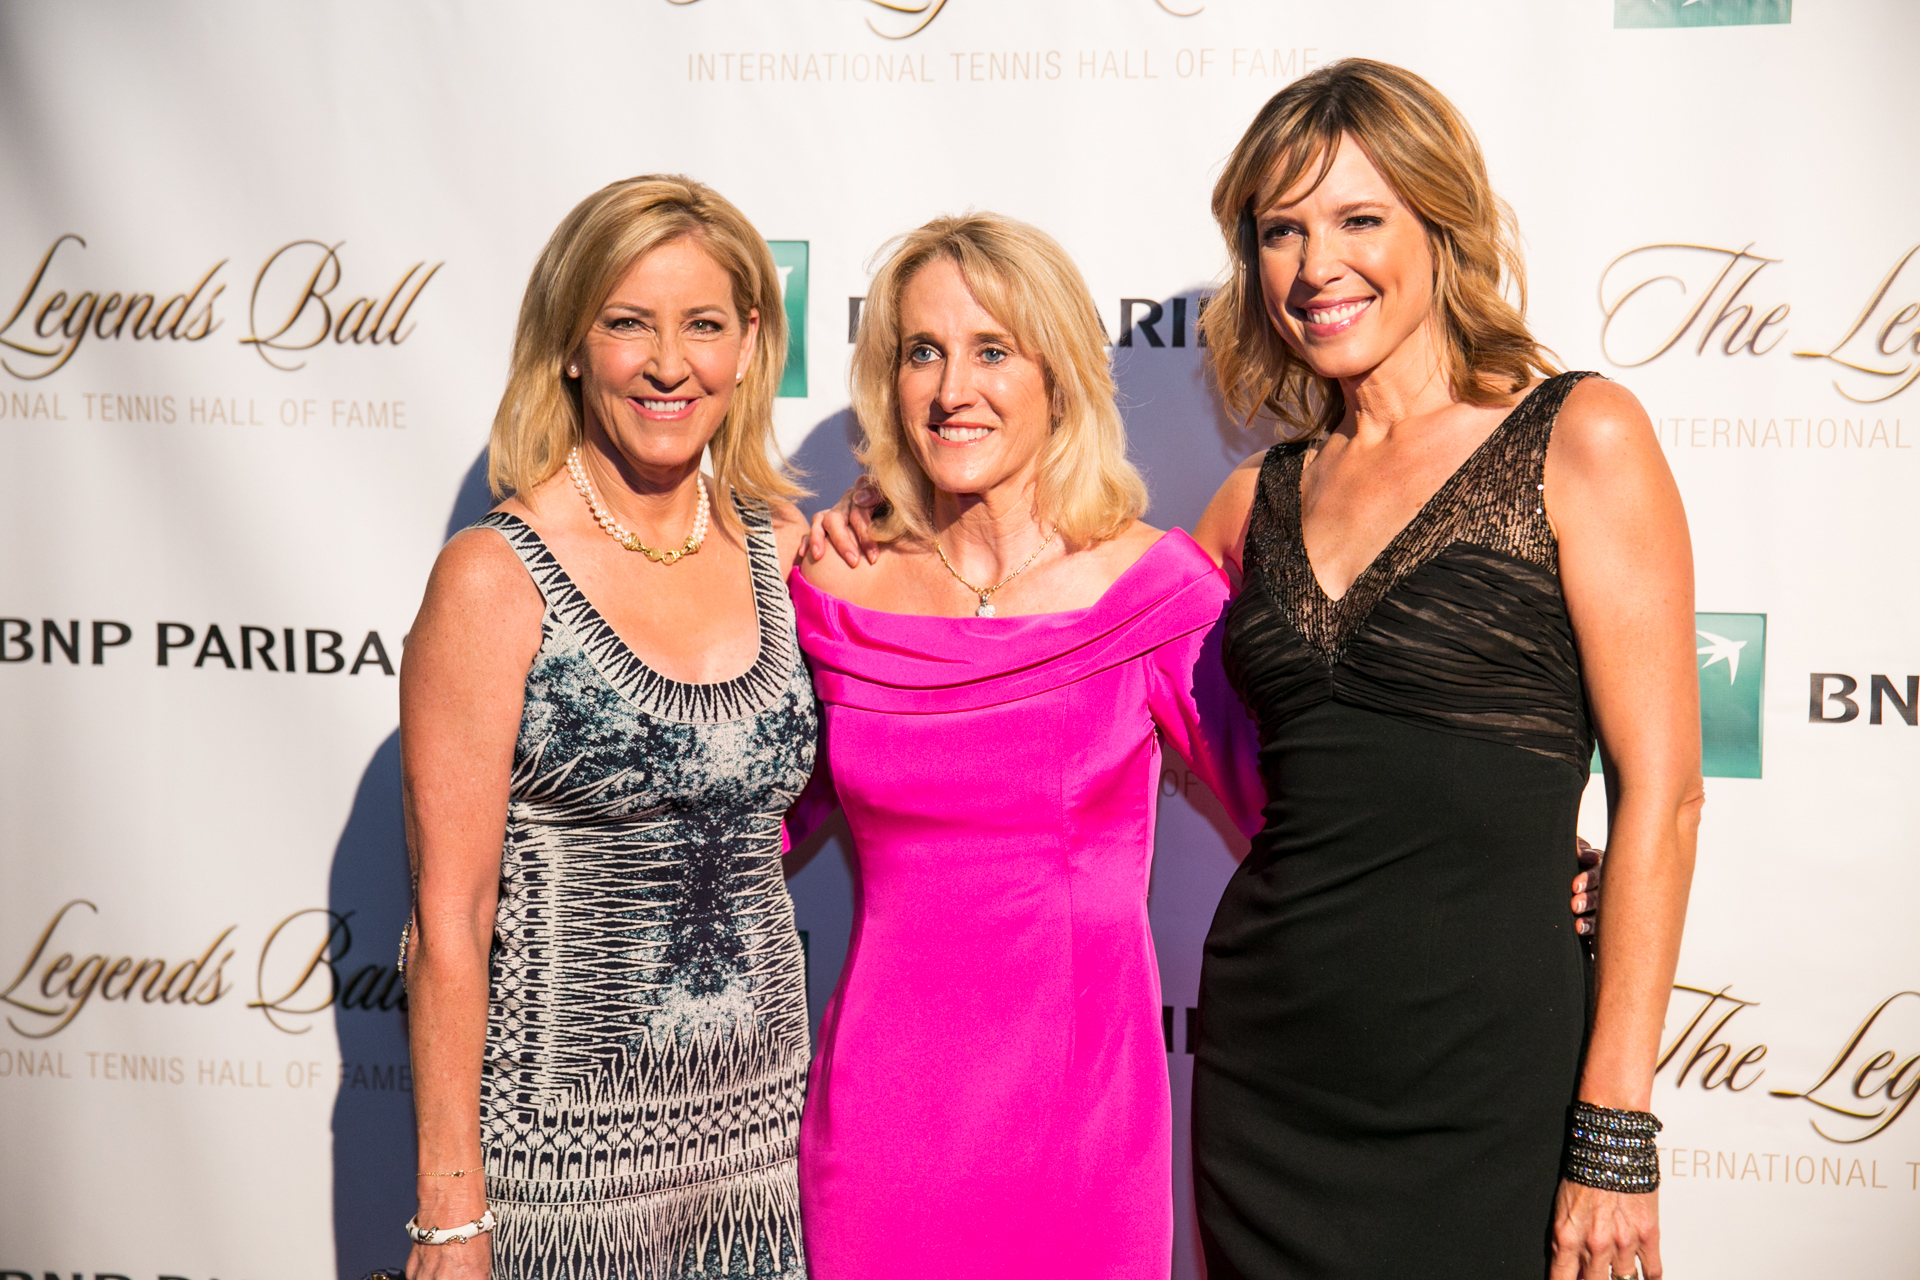 GlamSlam Tennis legends on the red carpet – COURTGIRL